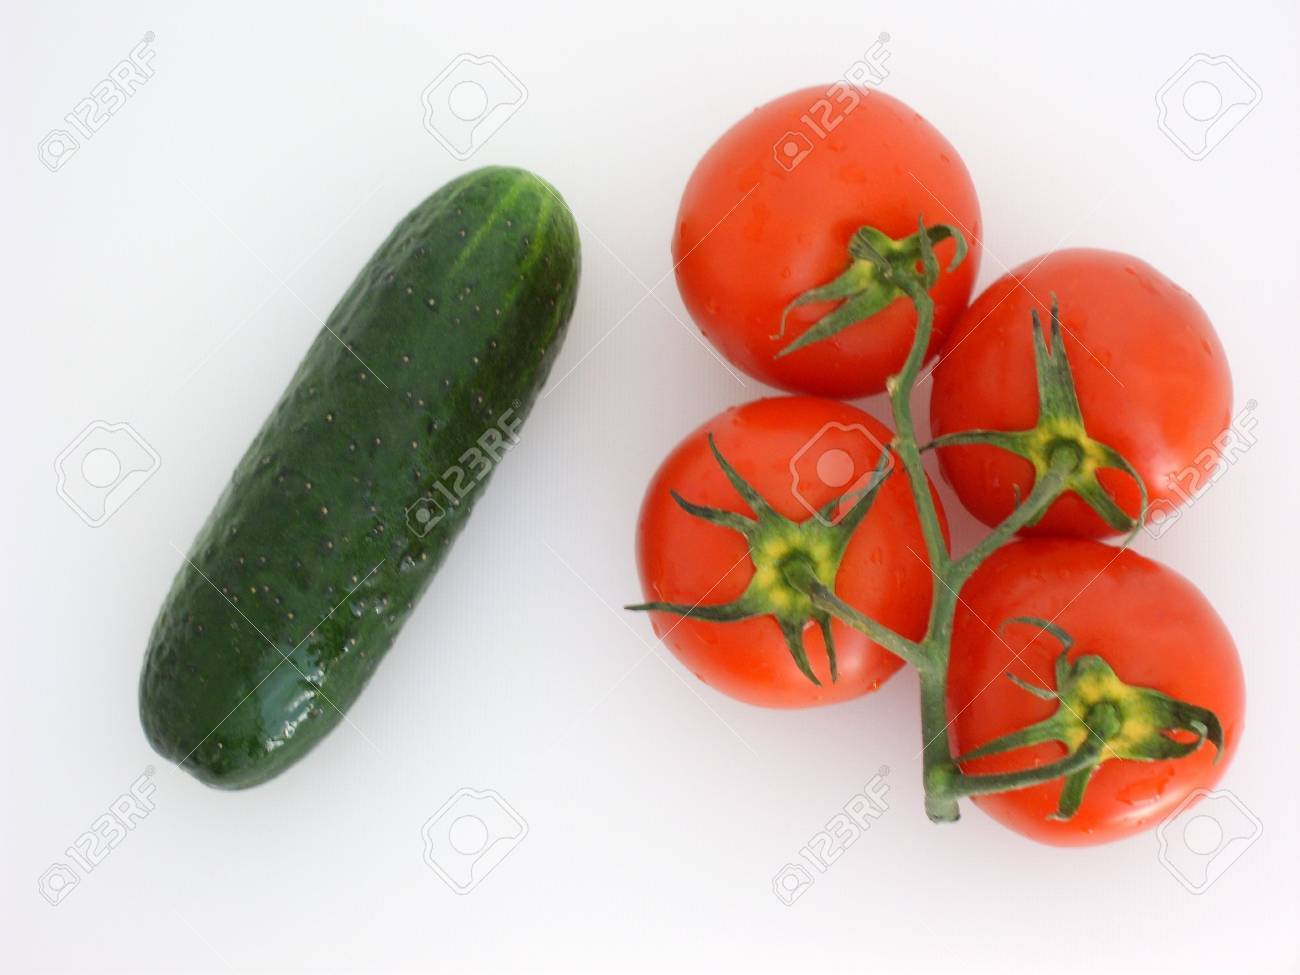 Vegetables: four red tomatoes on a branch and one green cucumber, isolated on white. (stock photo) Stock Photo - 3269265